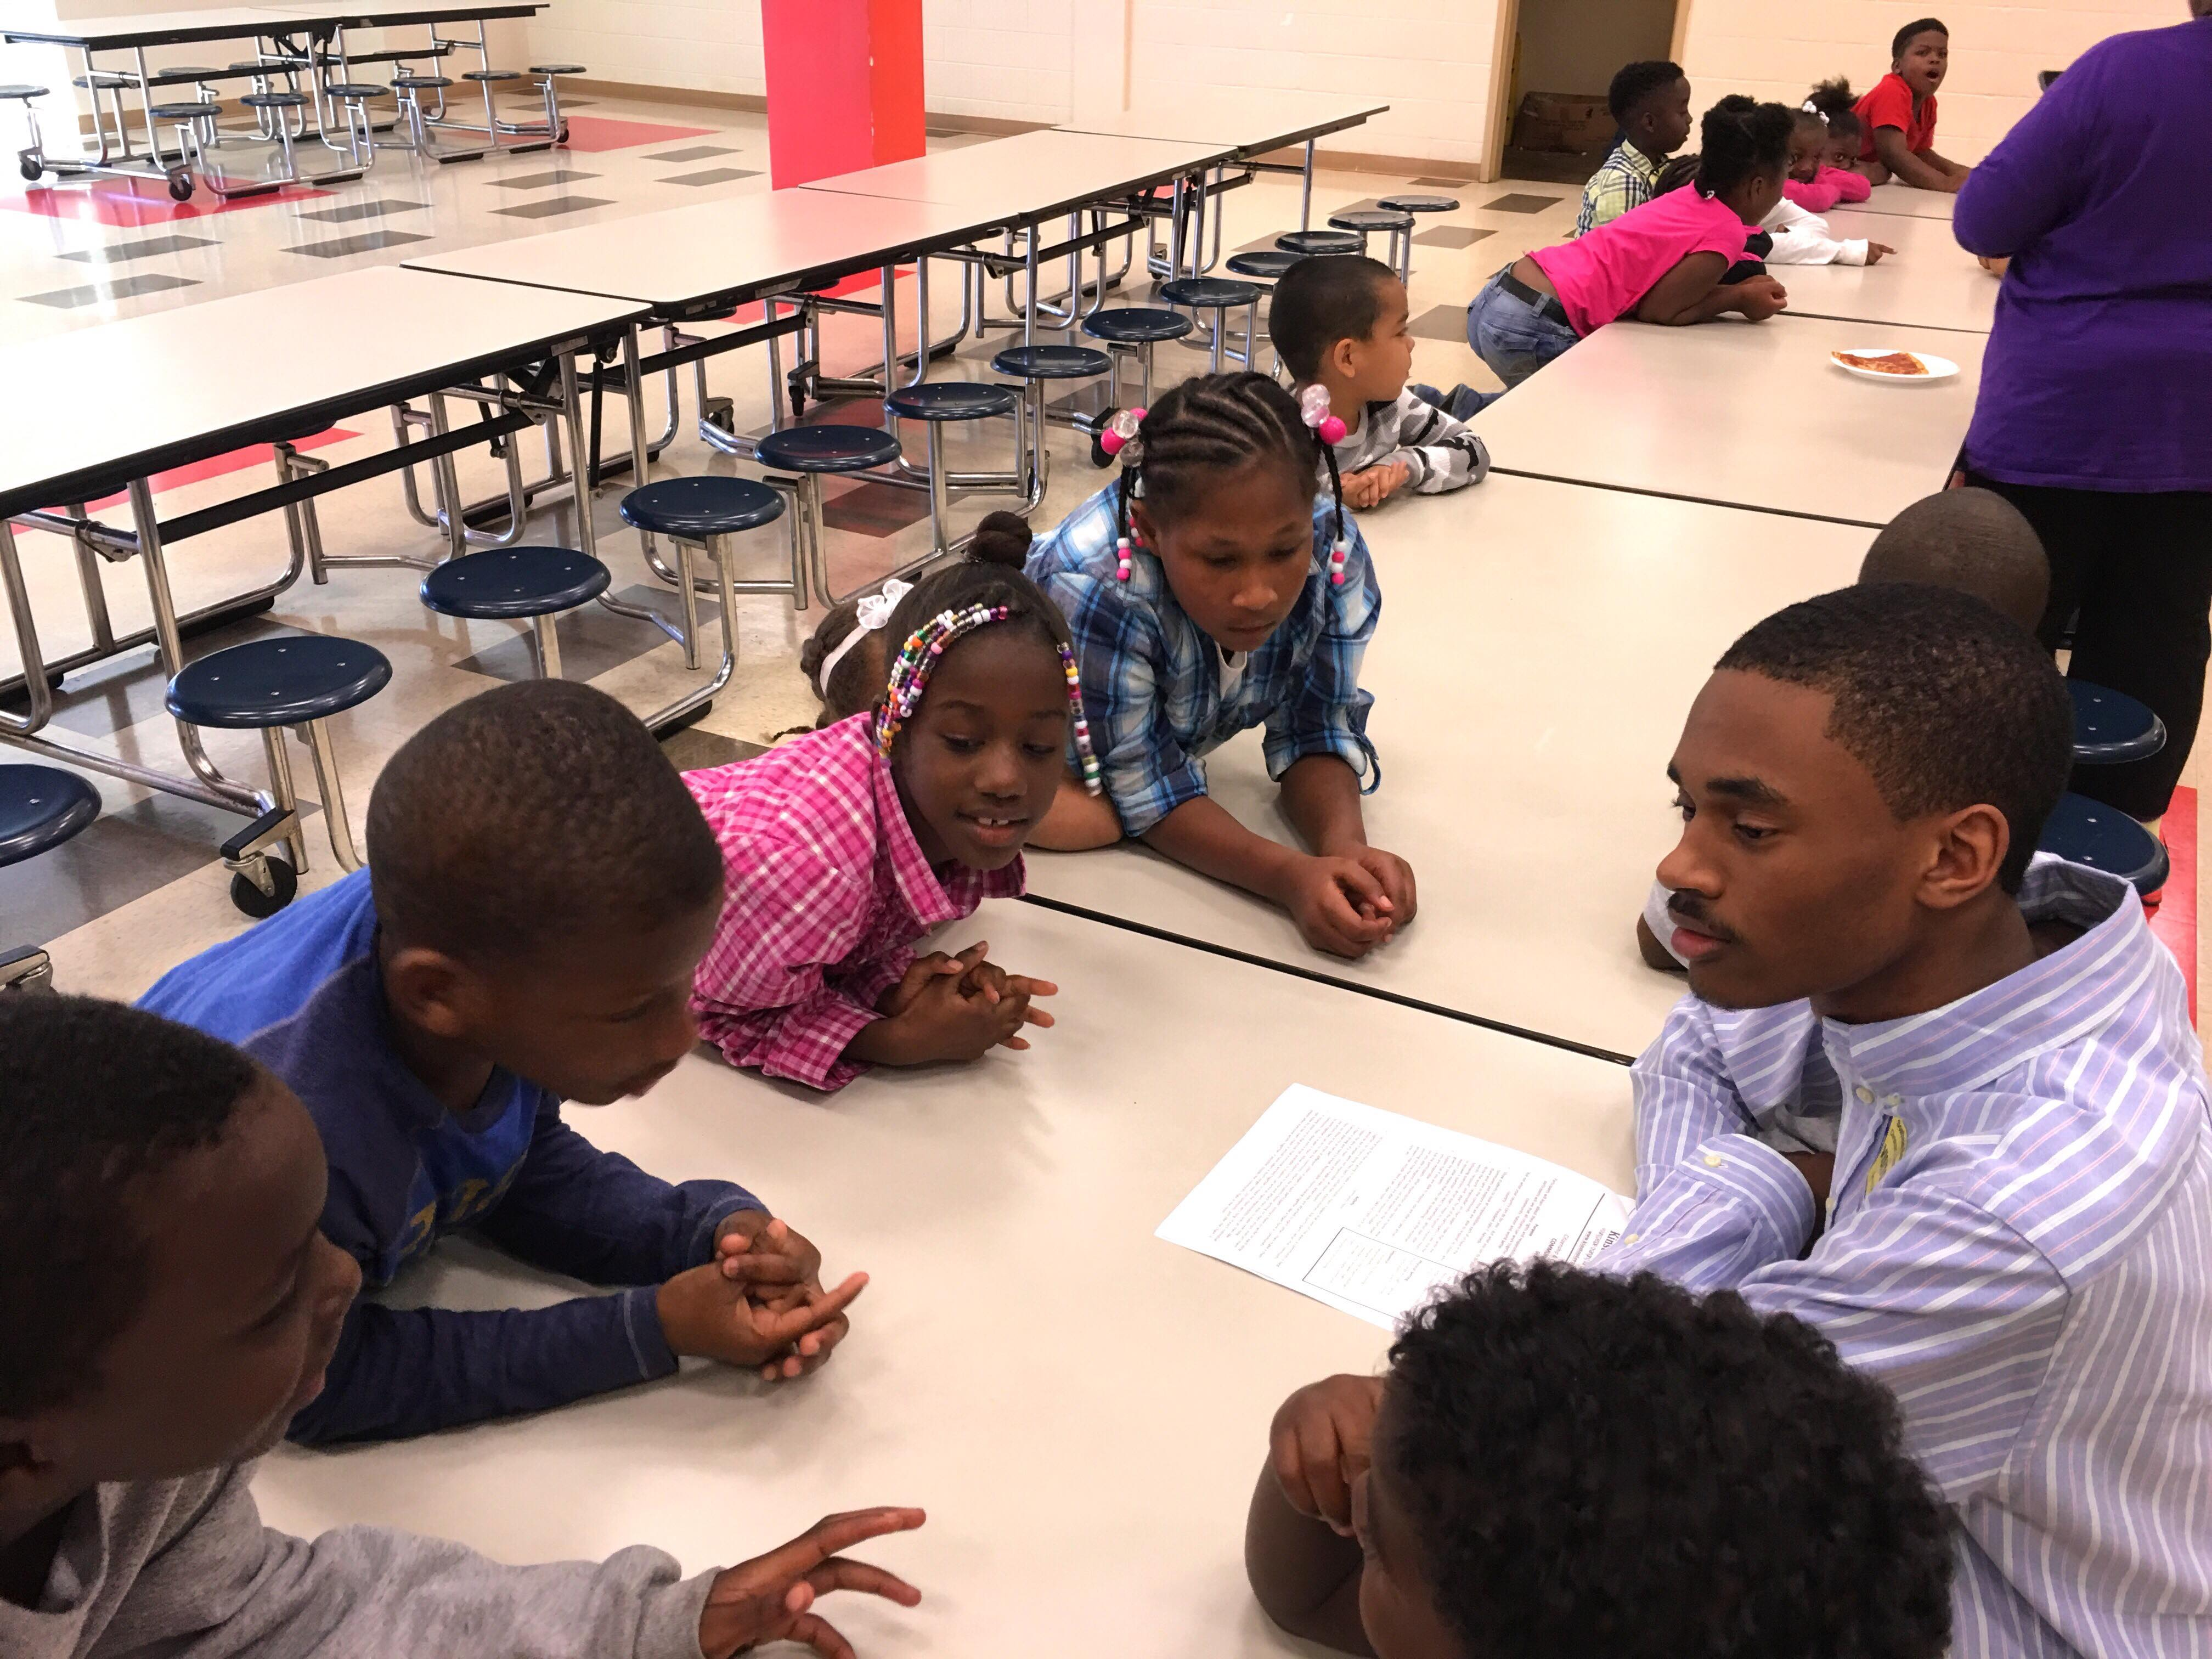 Chris J. Suggs spends time with the young people of Kinston, NC, as a part of his local mentorship program.